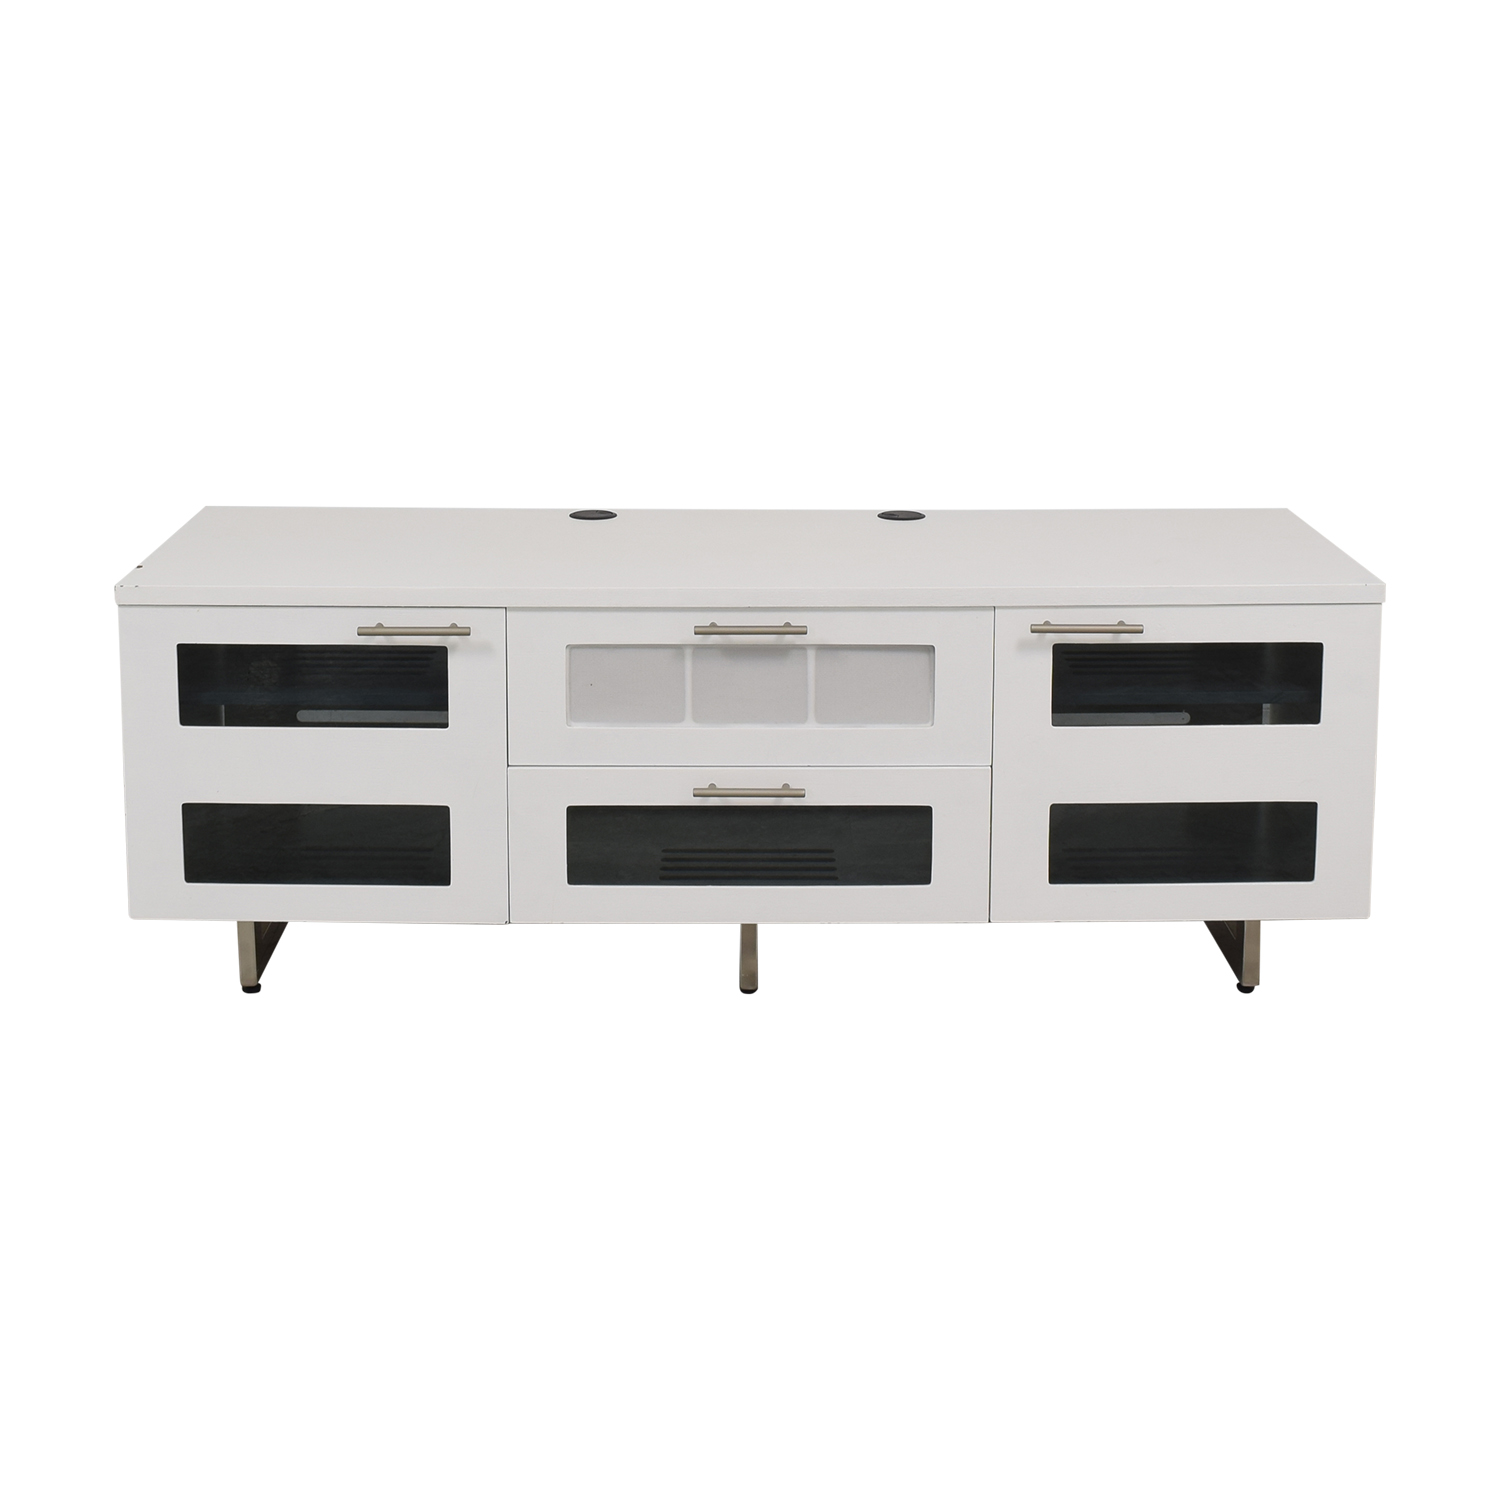 BDI Furniture BDI Avion Noir TV Stand